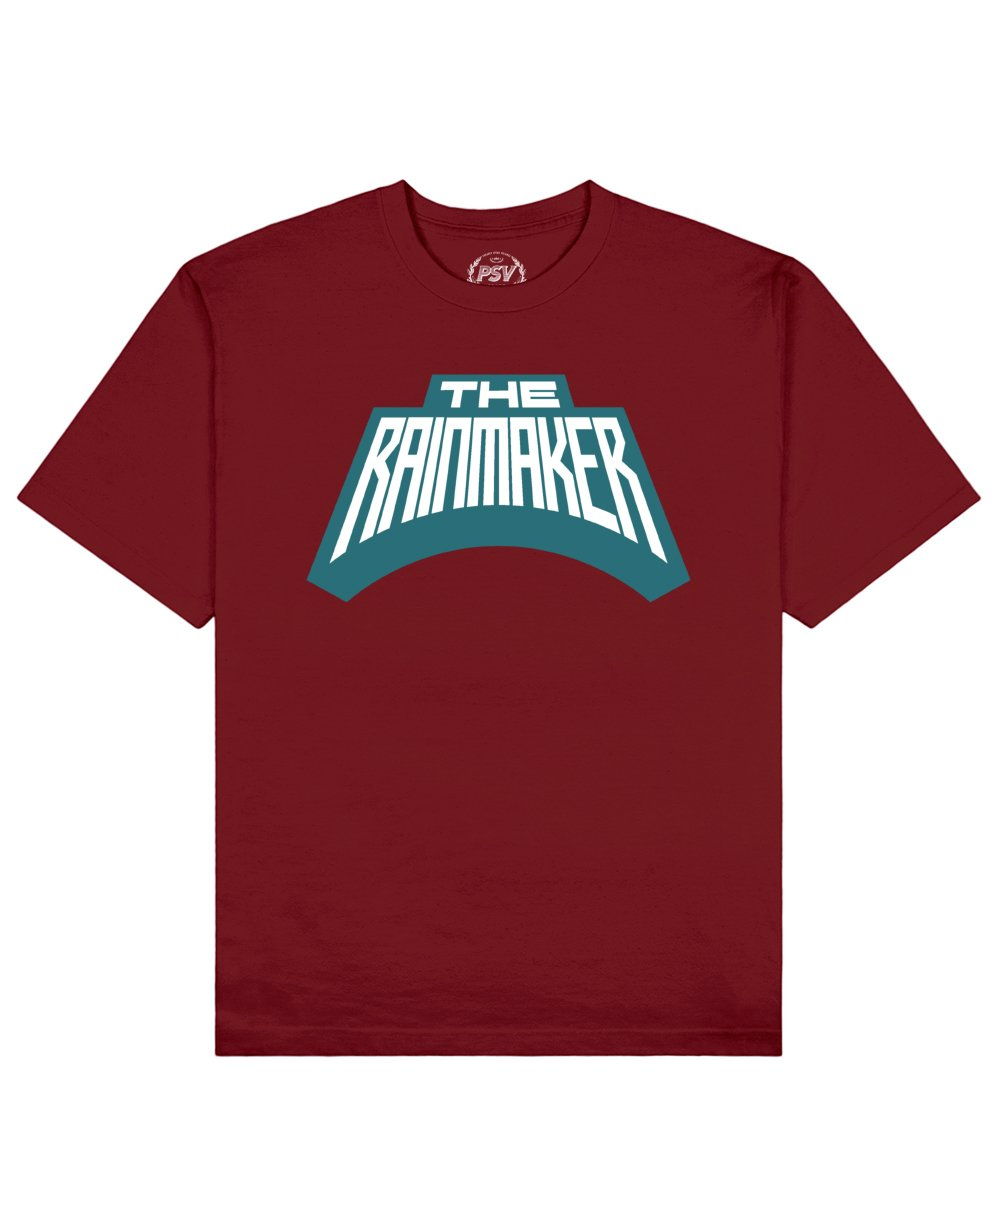 The Rainmaker Print T-Shirt in Red - T-Shirts - PSV - BRANMA